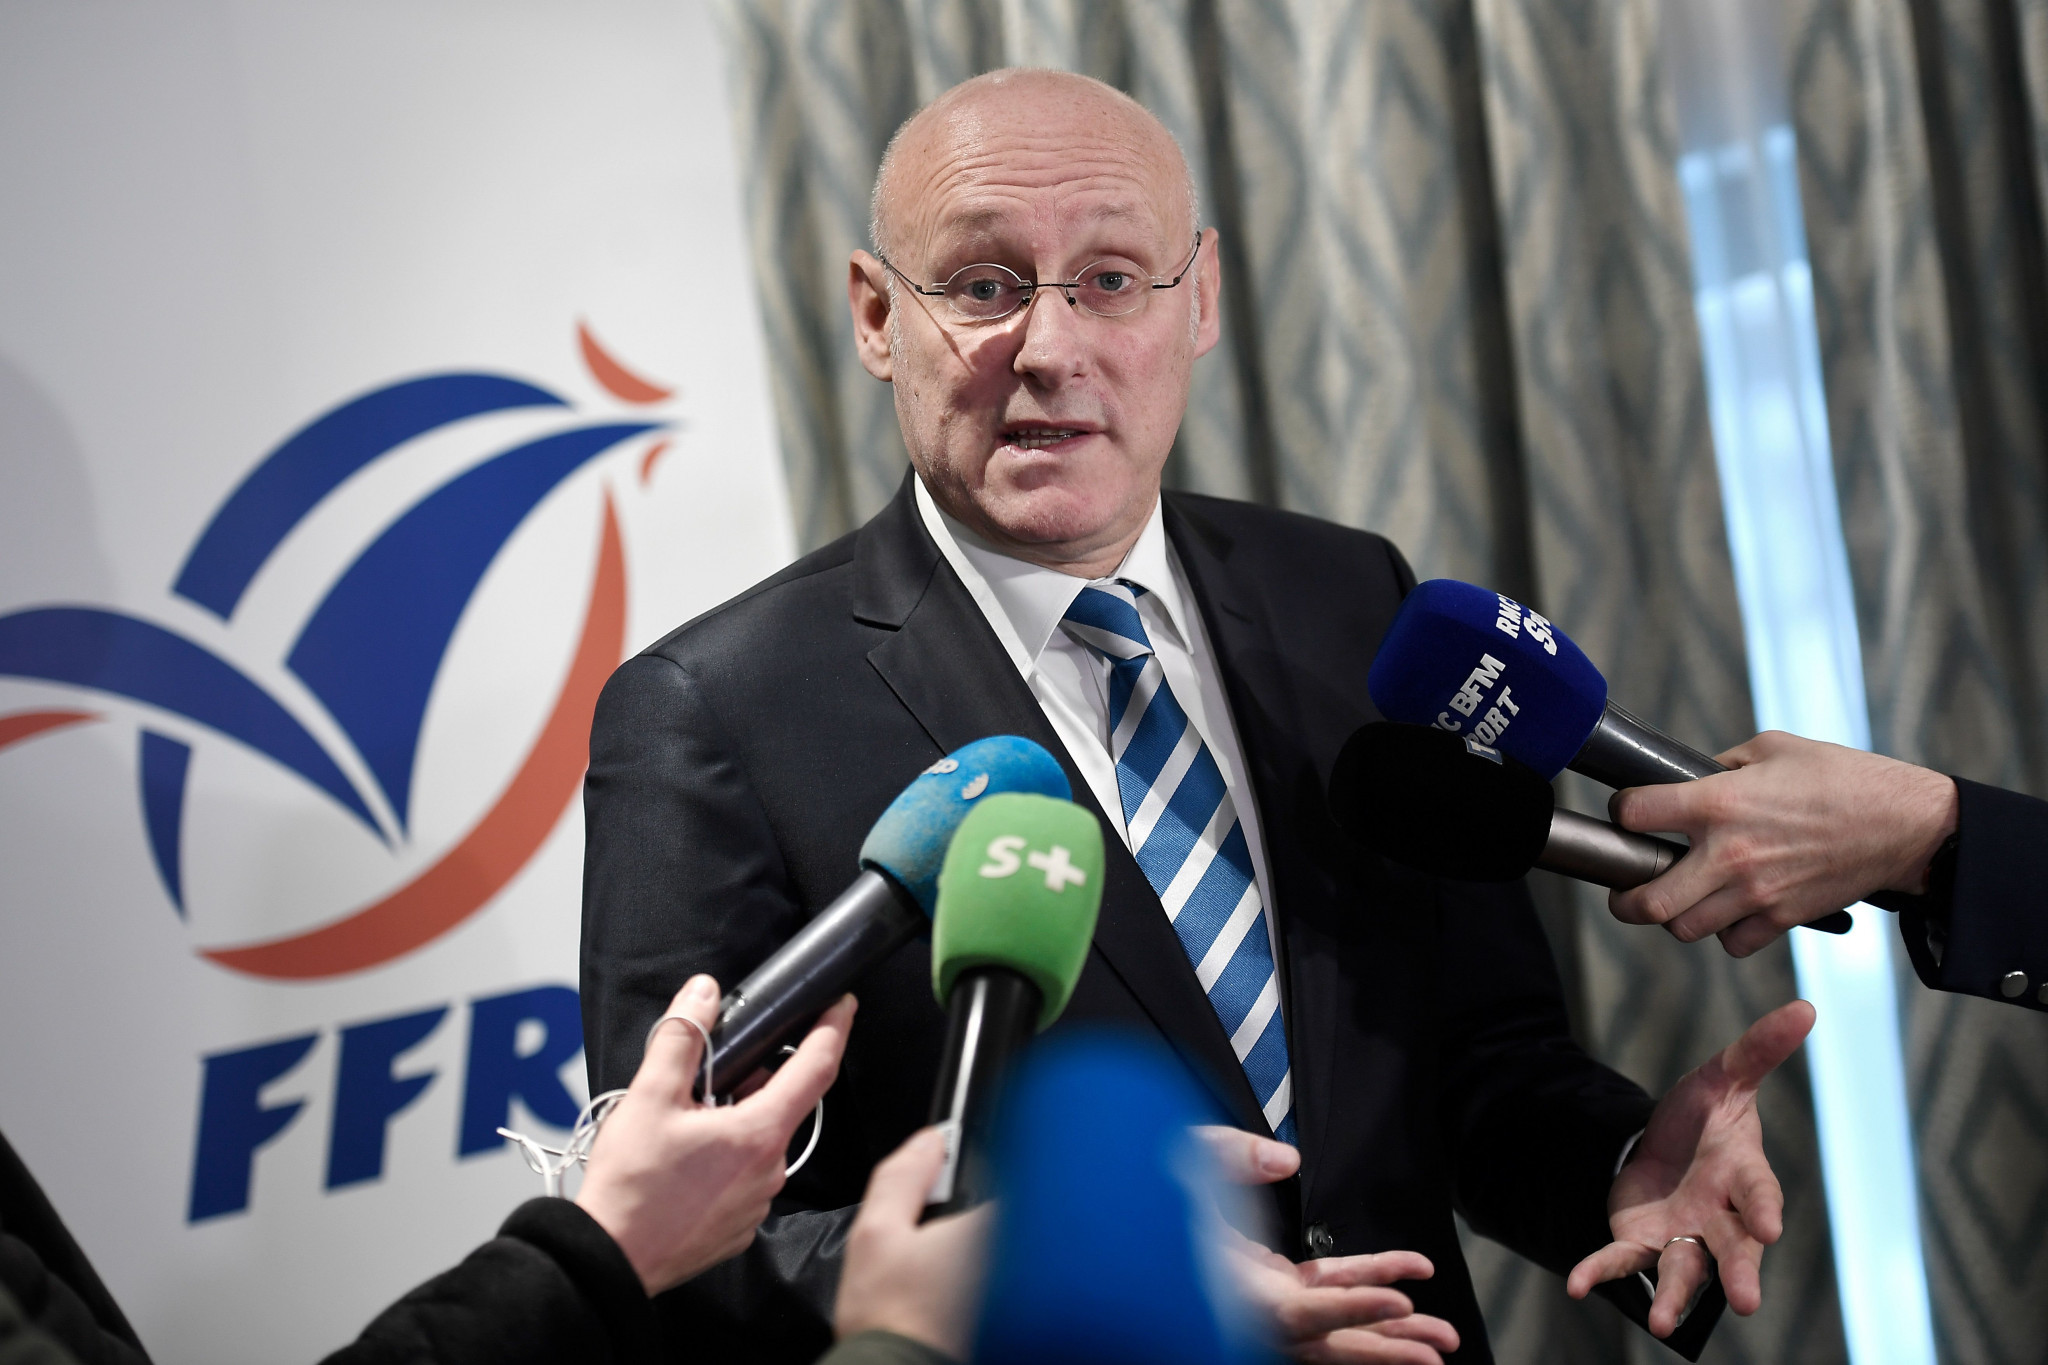 Police raid headquarters of French Rugby Federation